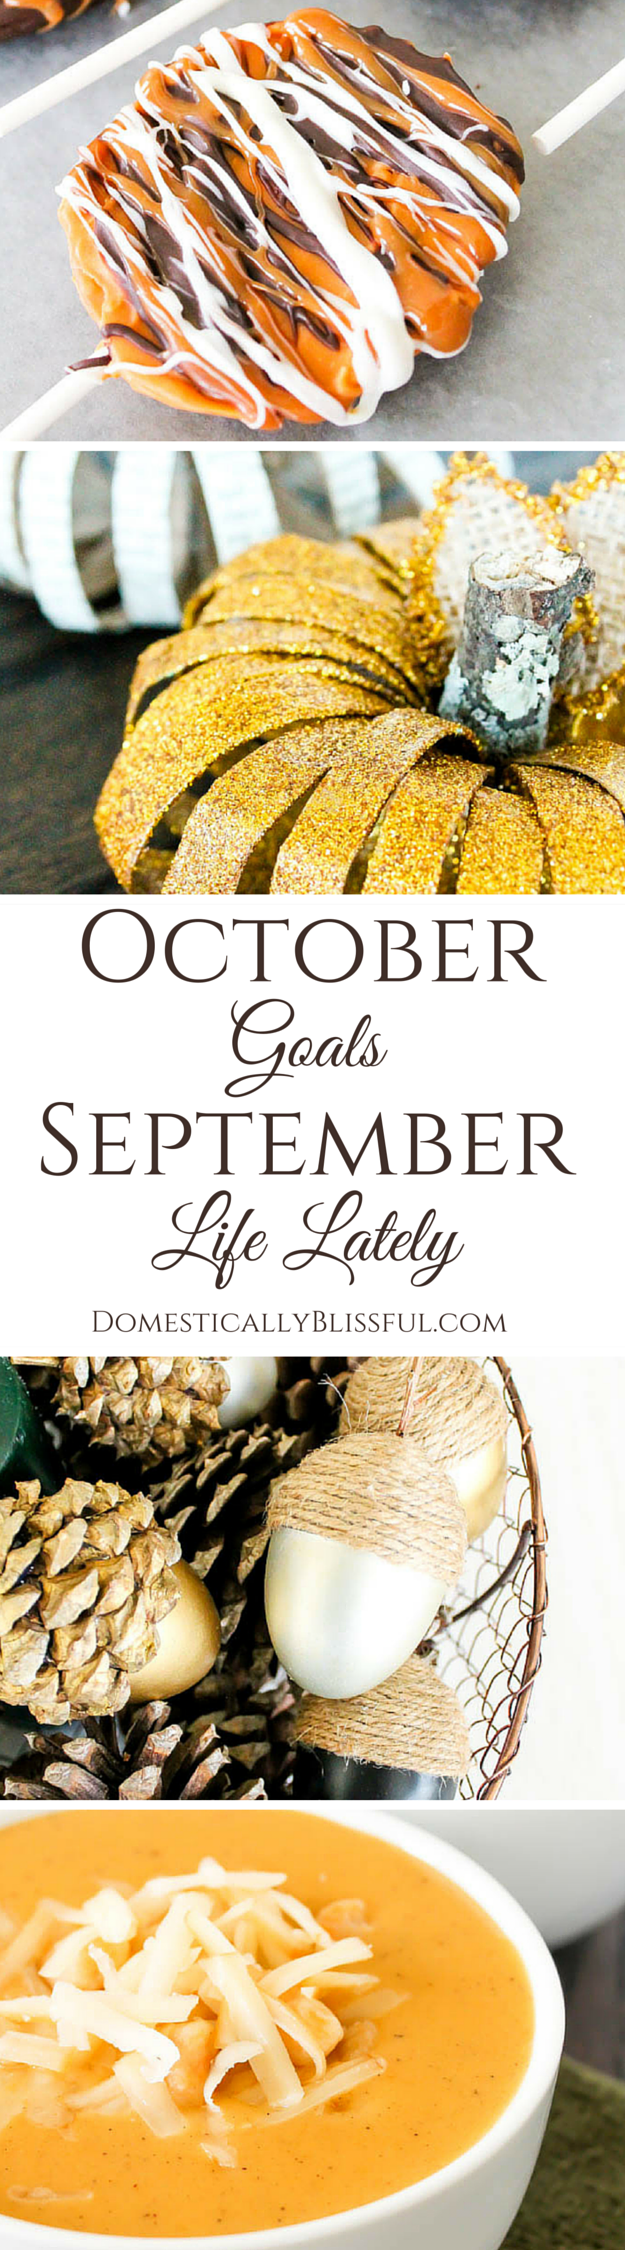 Domestically Blissful's October Goals & September Life Lately